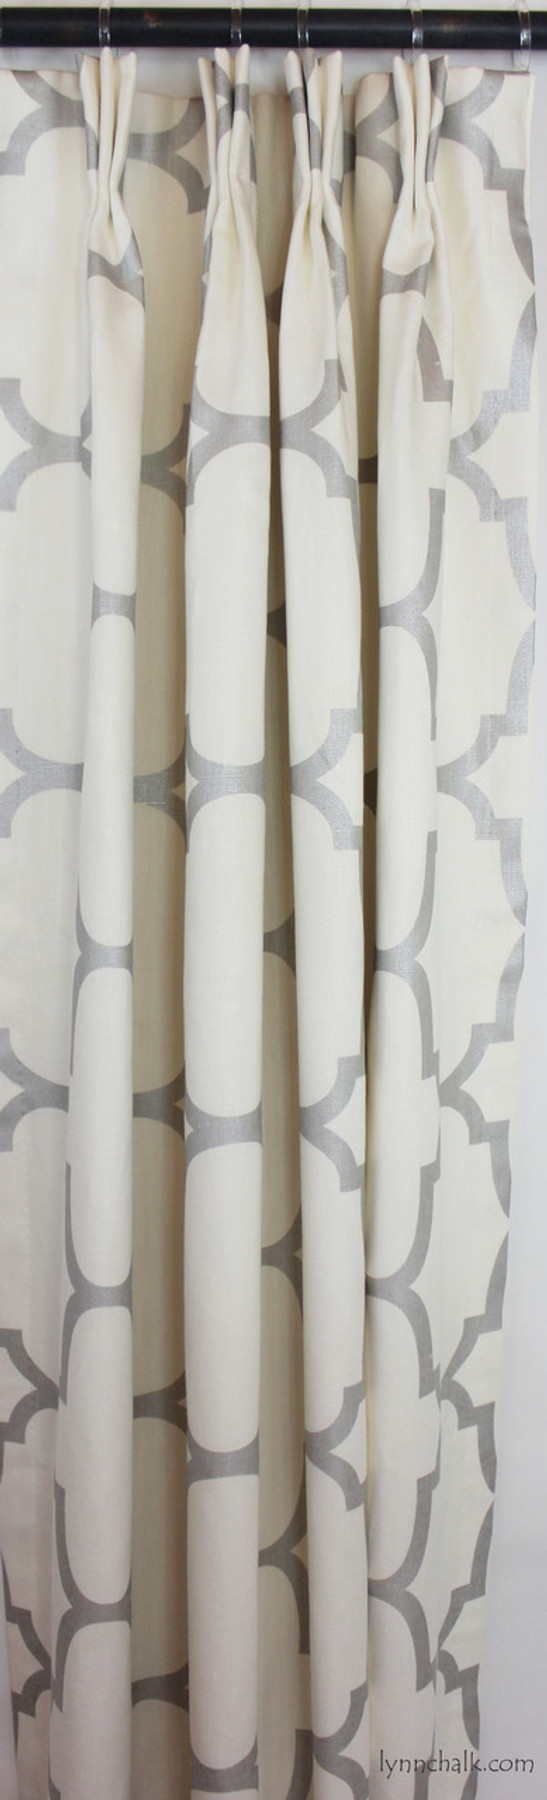 Custom Drapes in Riad in Pearl Silver